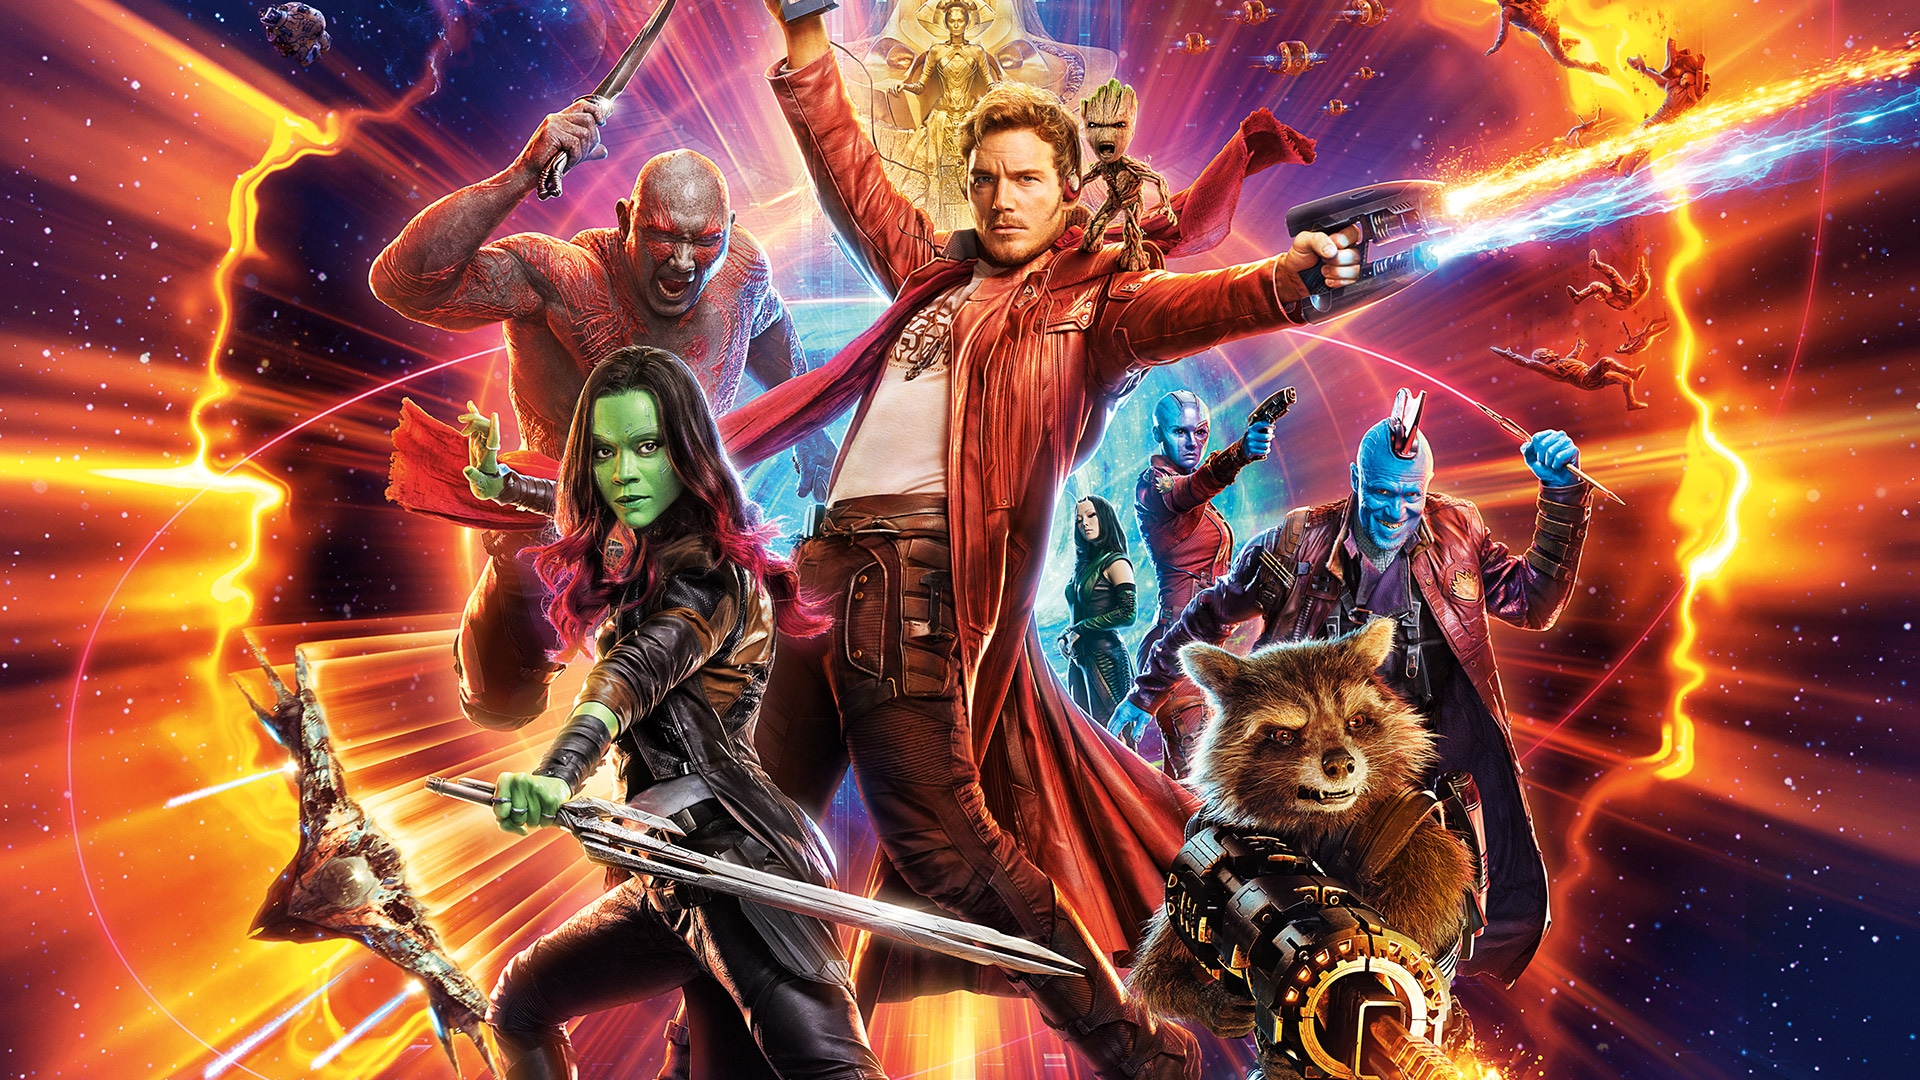 Photo of 5 Superheroes Who Should Crossover With Guardians of The Galaxy